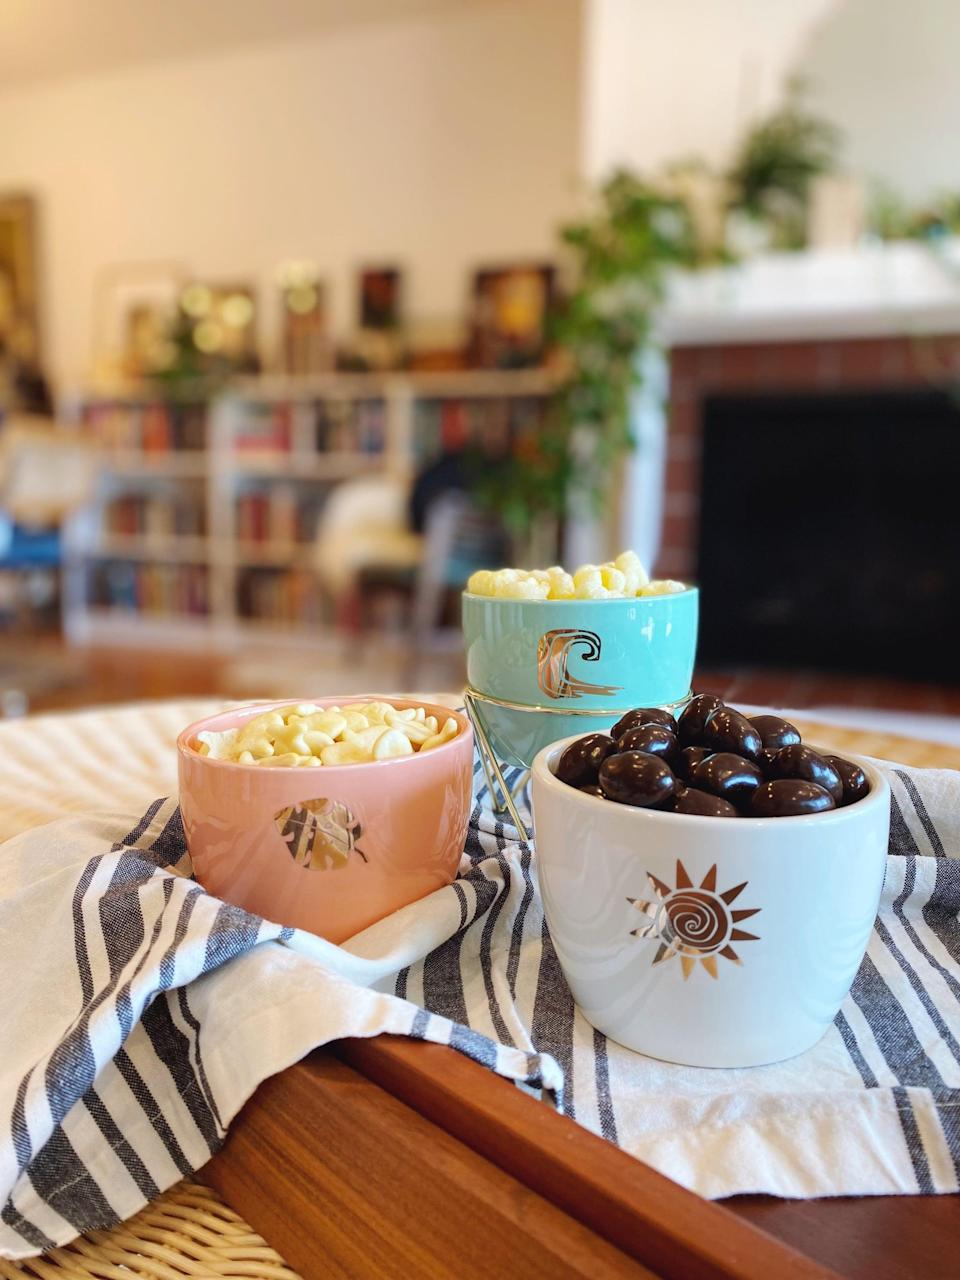 <p>The <span>Disney Princess X POPSUGAR Moana Planters</span> ($25 for three) are the perfect size for storing snacks like popcorn or candy. I love using them for hosting my book club and low-key movie nights!</p>